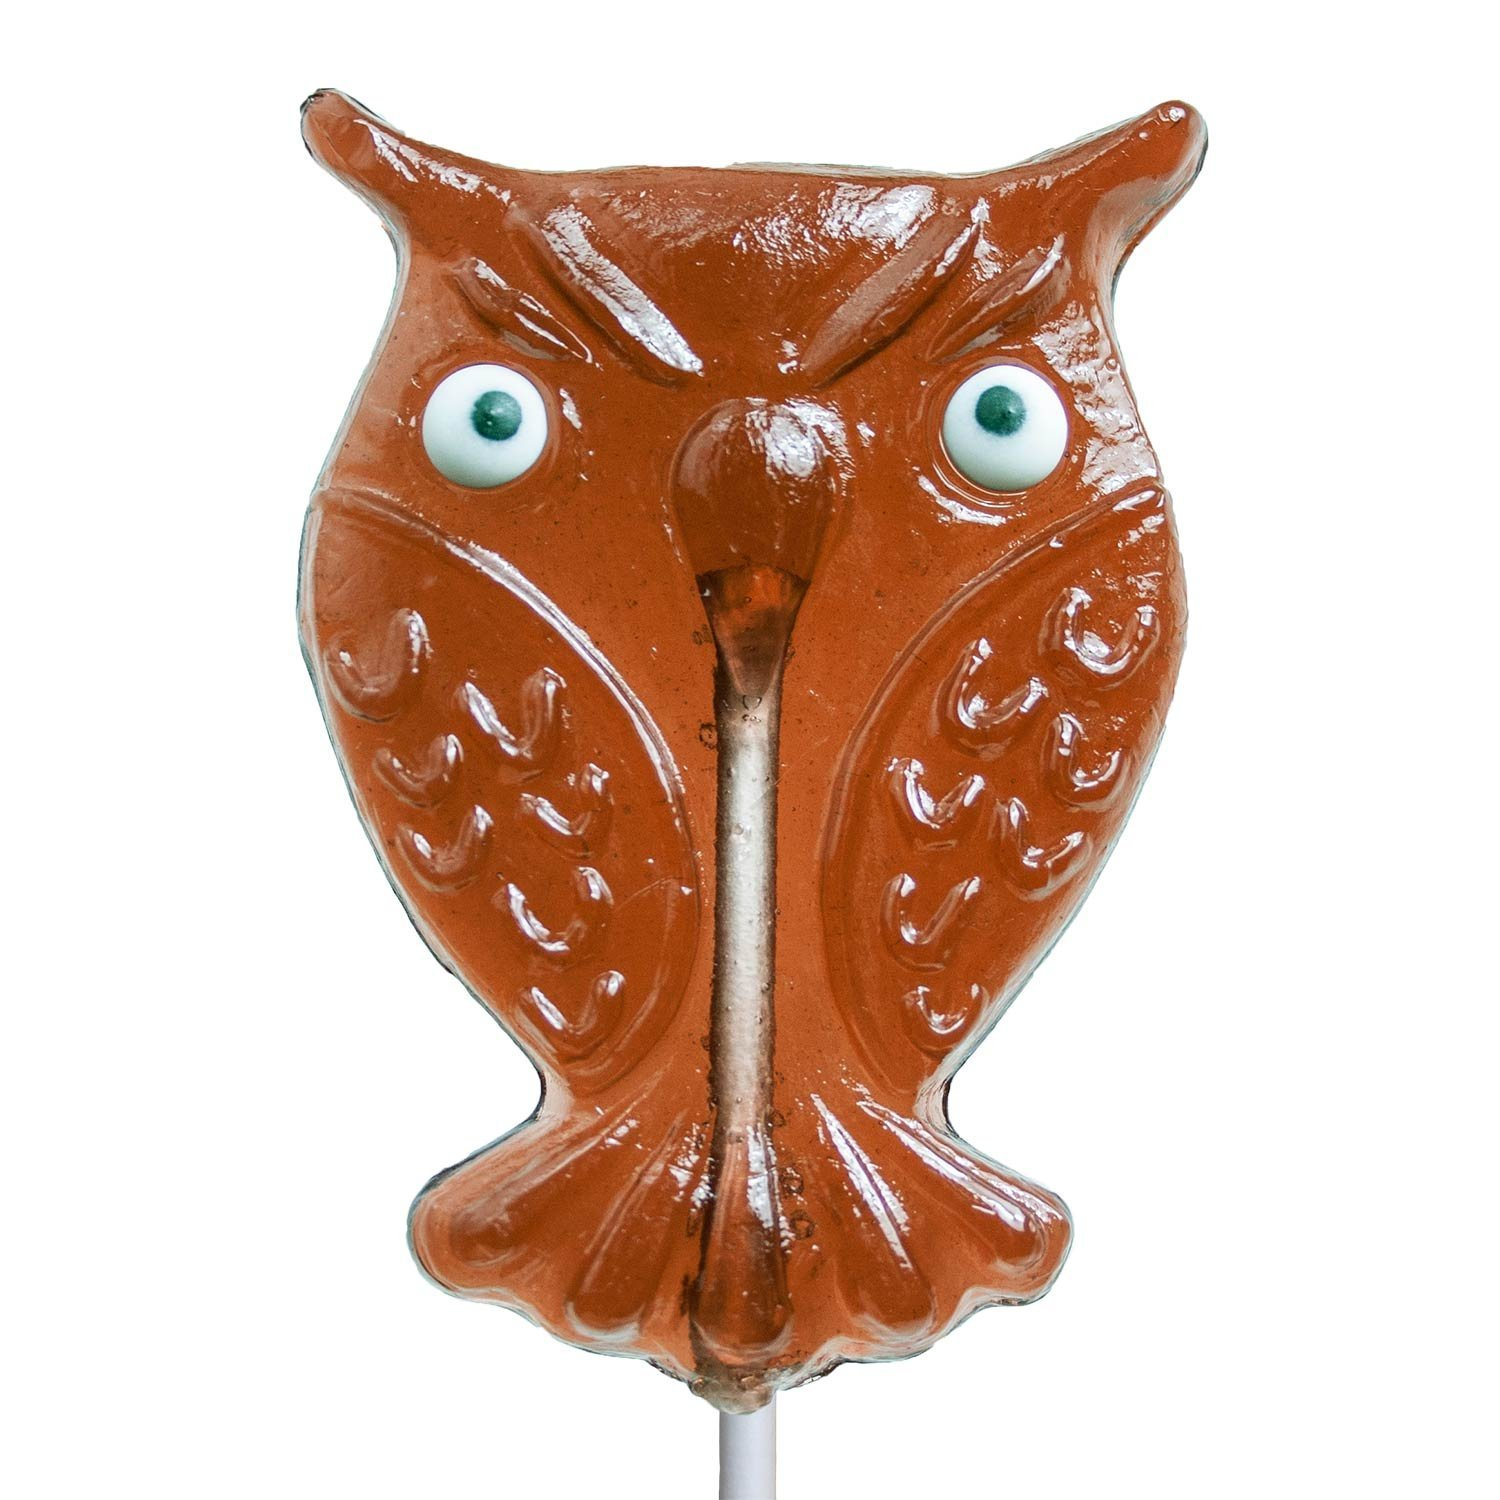 Maple Owl Hard Candy Lollipop (24 Count) by Melville Candy